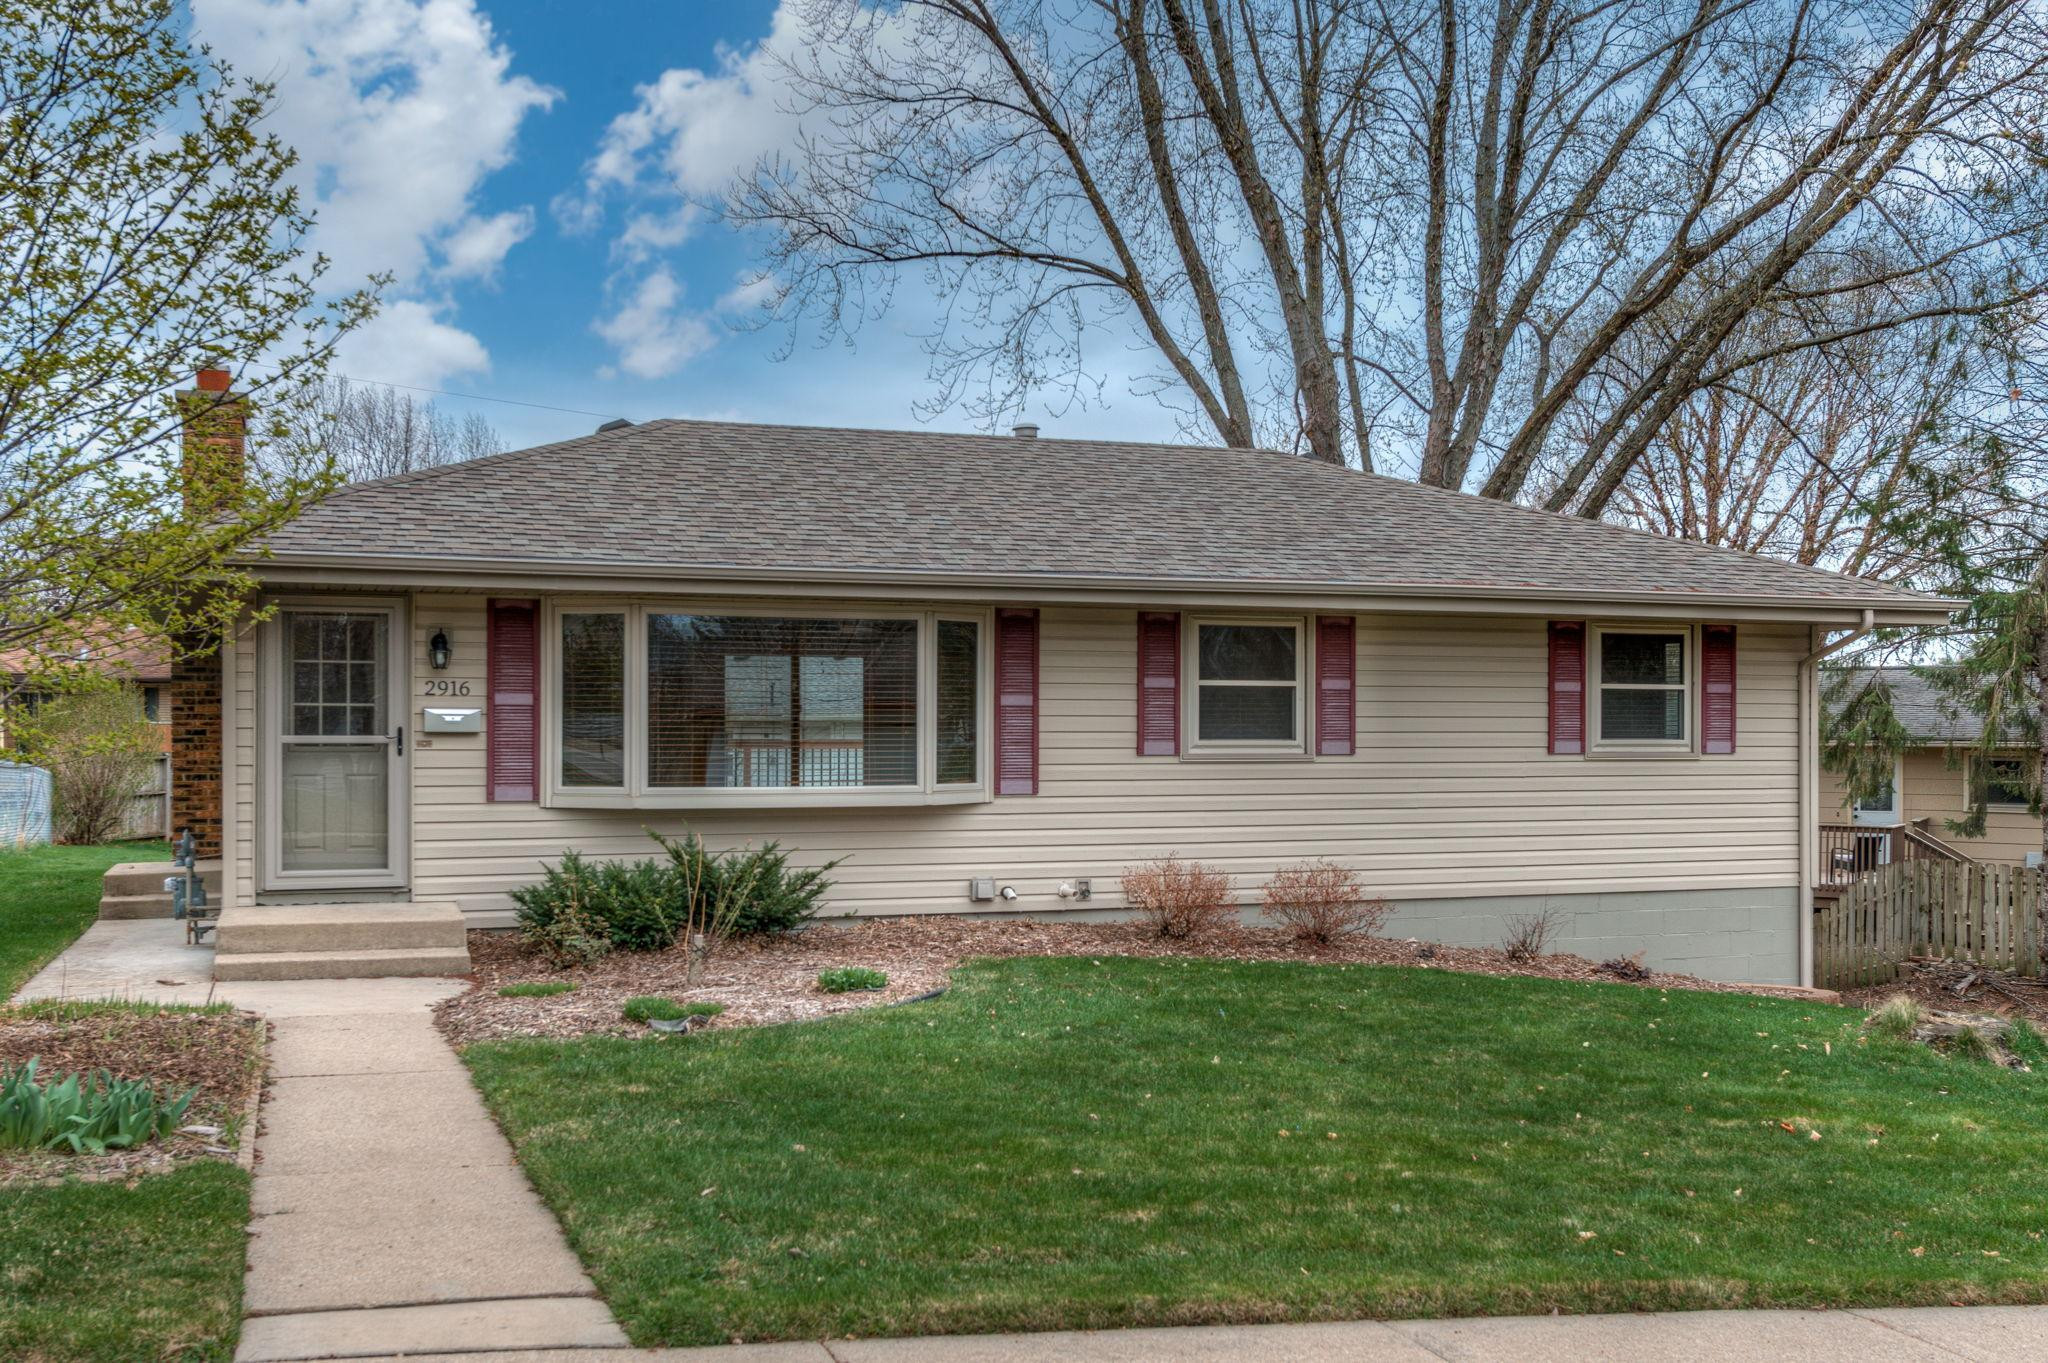 2916 15th Avenue NW, Rochester, MN 55901